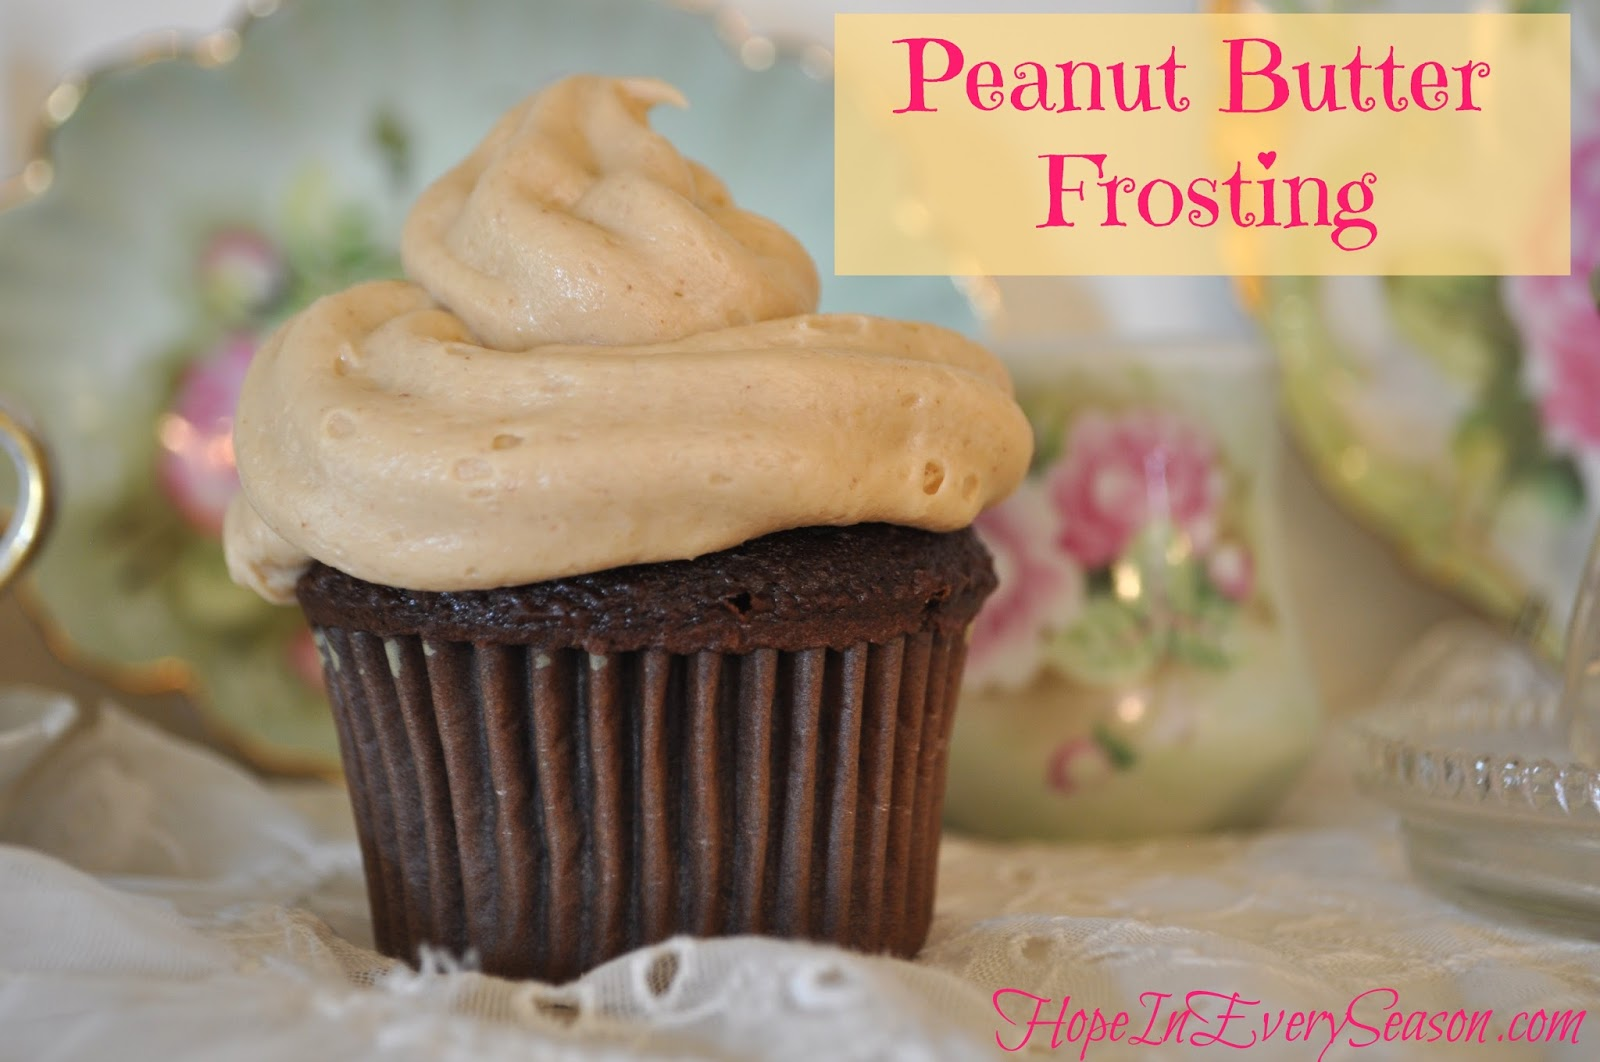 Hope In Every Season: Peanut Butter Frosting